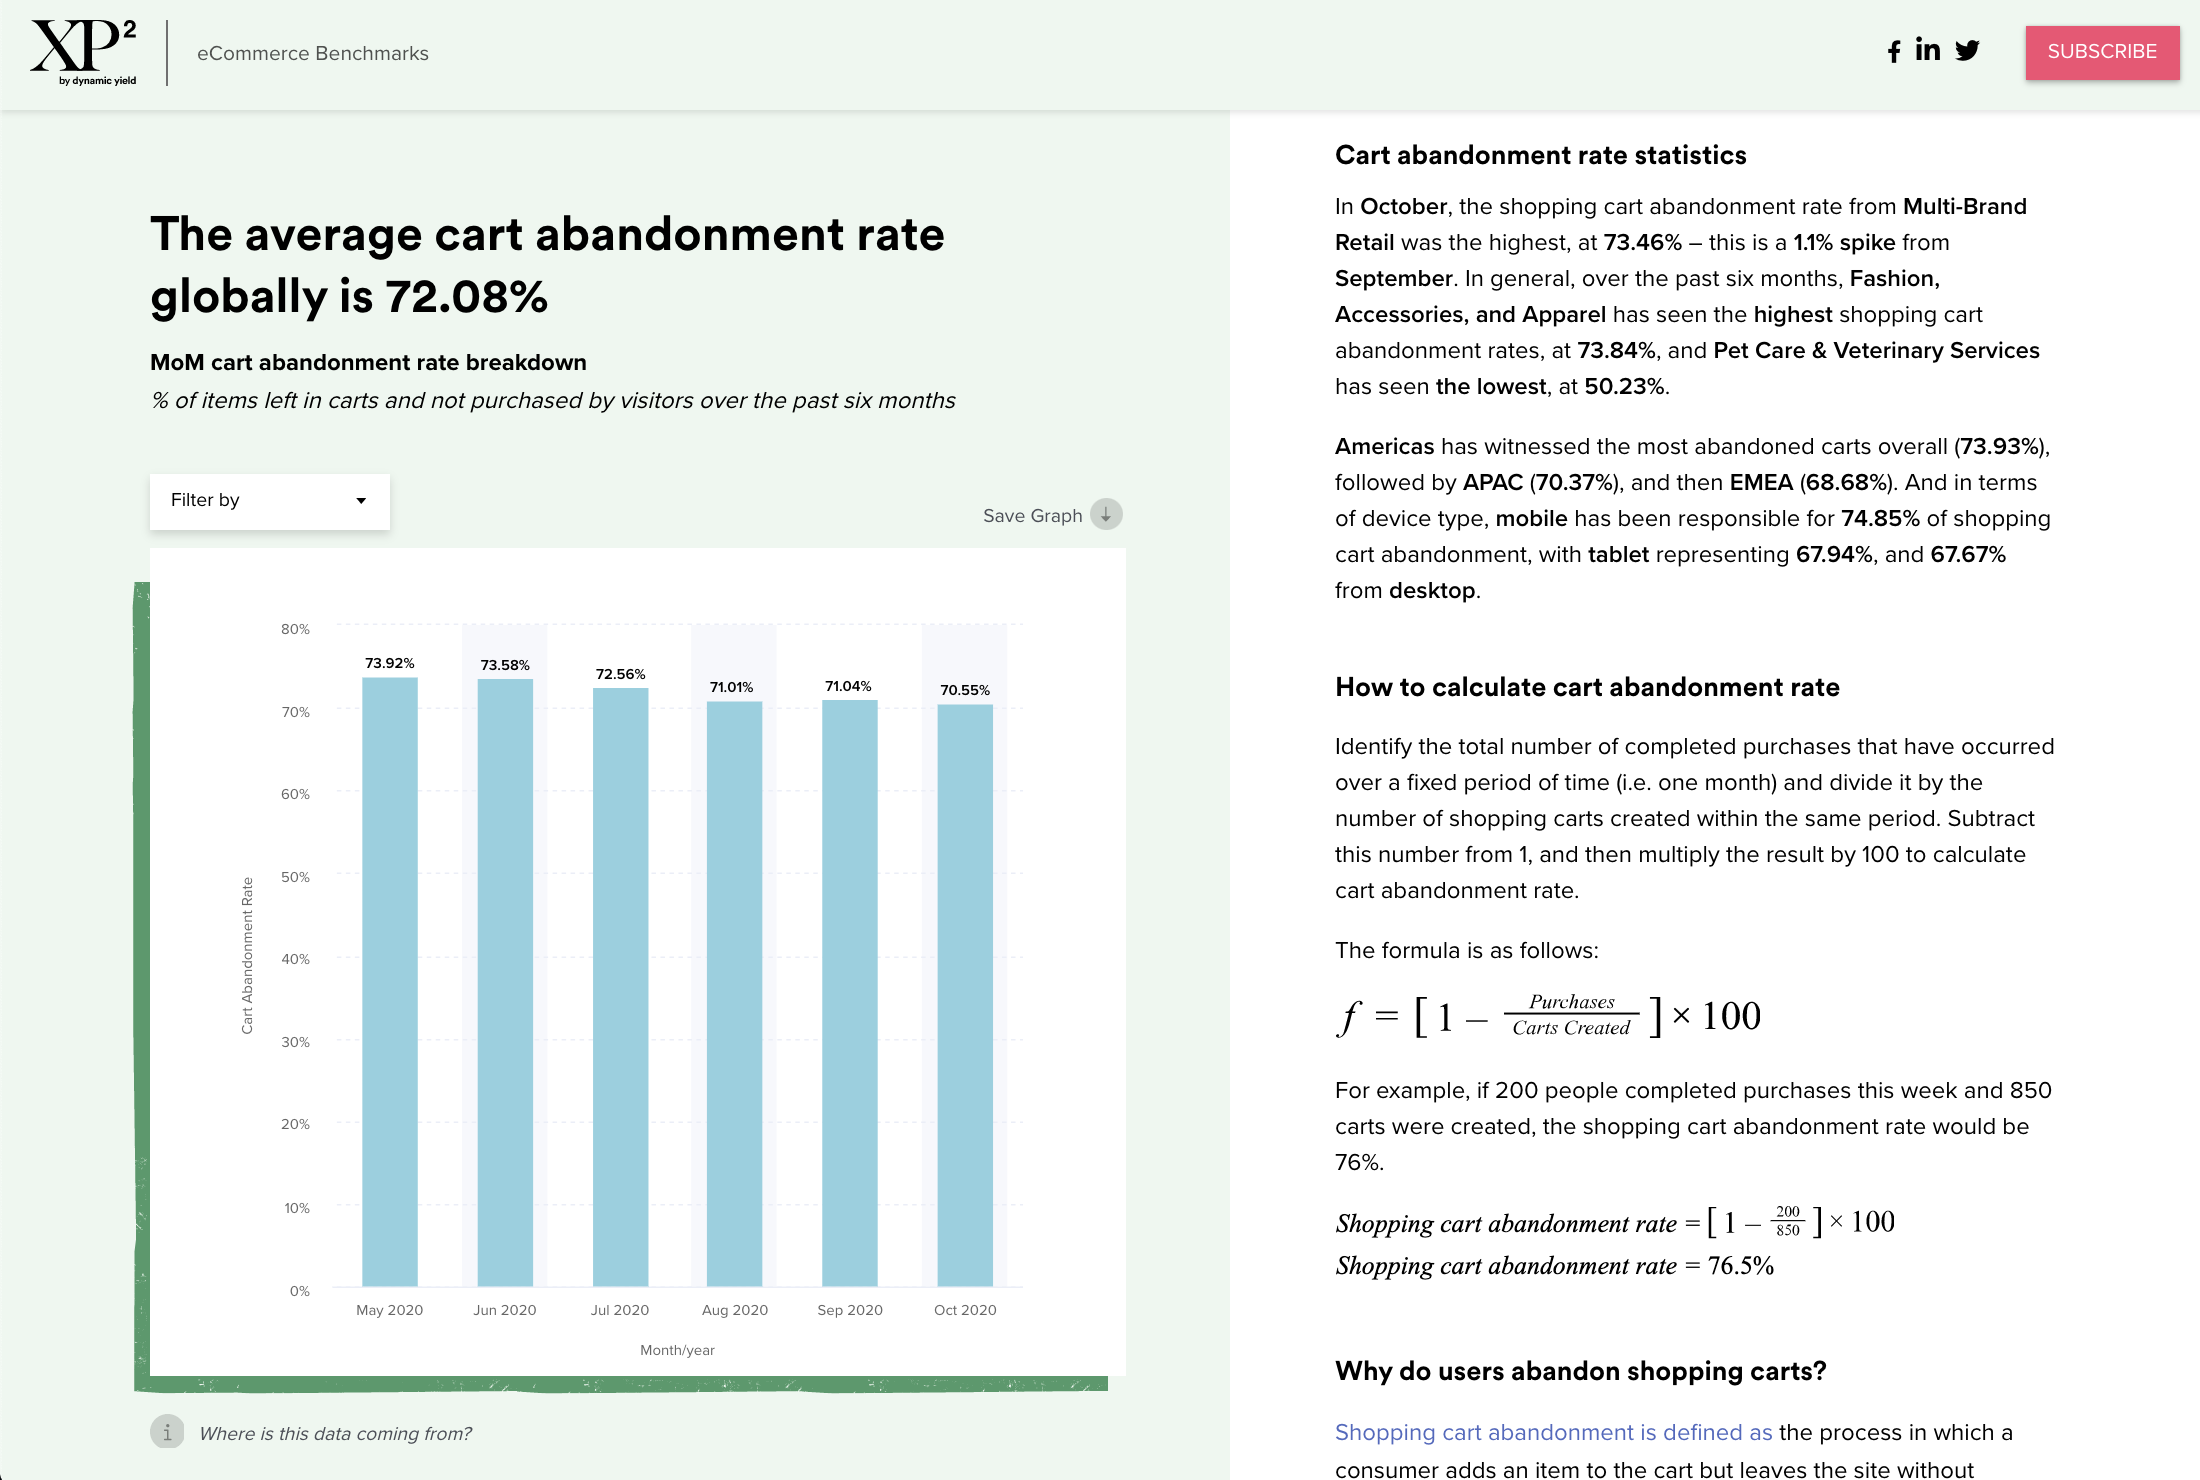 Shopping cart abandonment insights and trends page on Dynamic Yield's industry benchmark tool